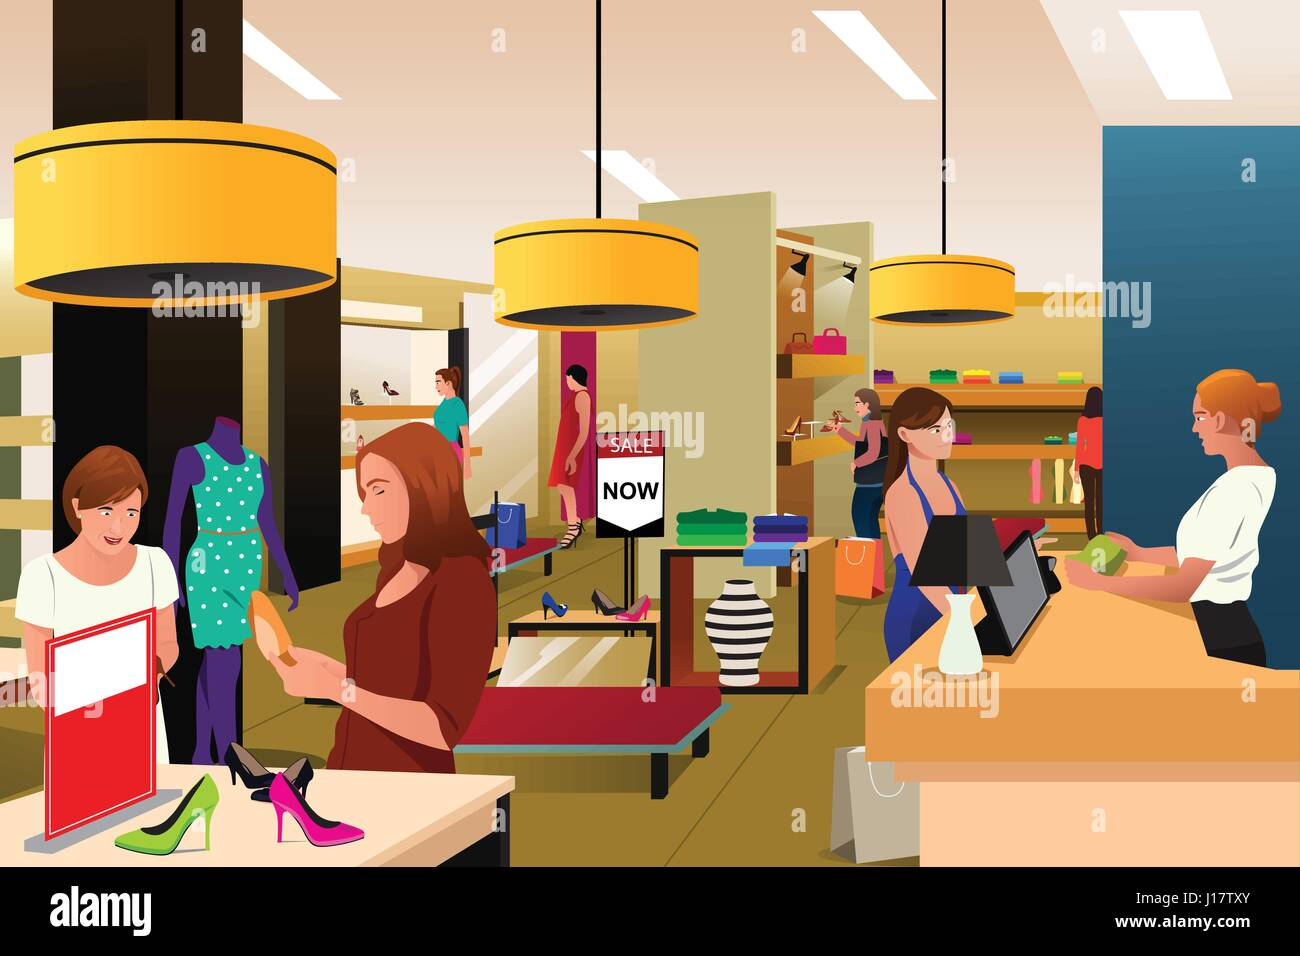 a vector illustration of women shopping in a clothing store stock